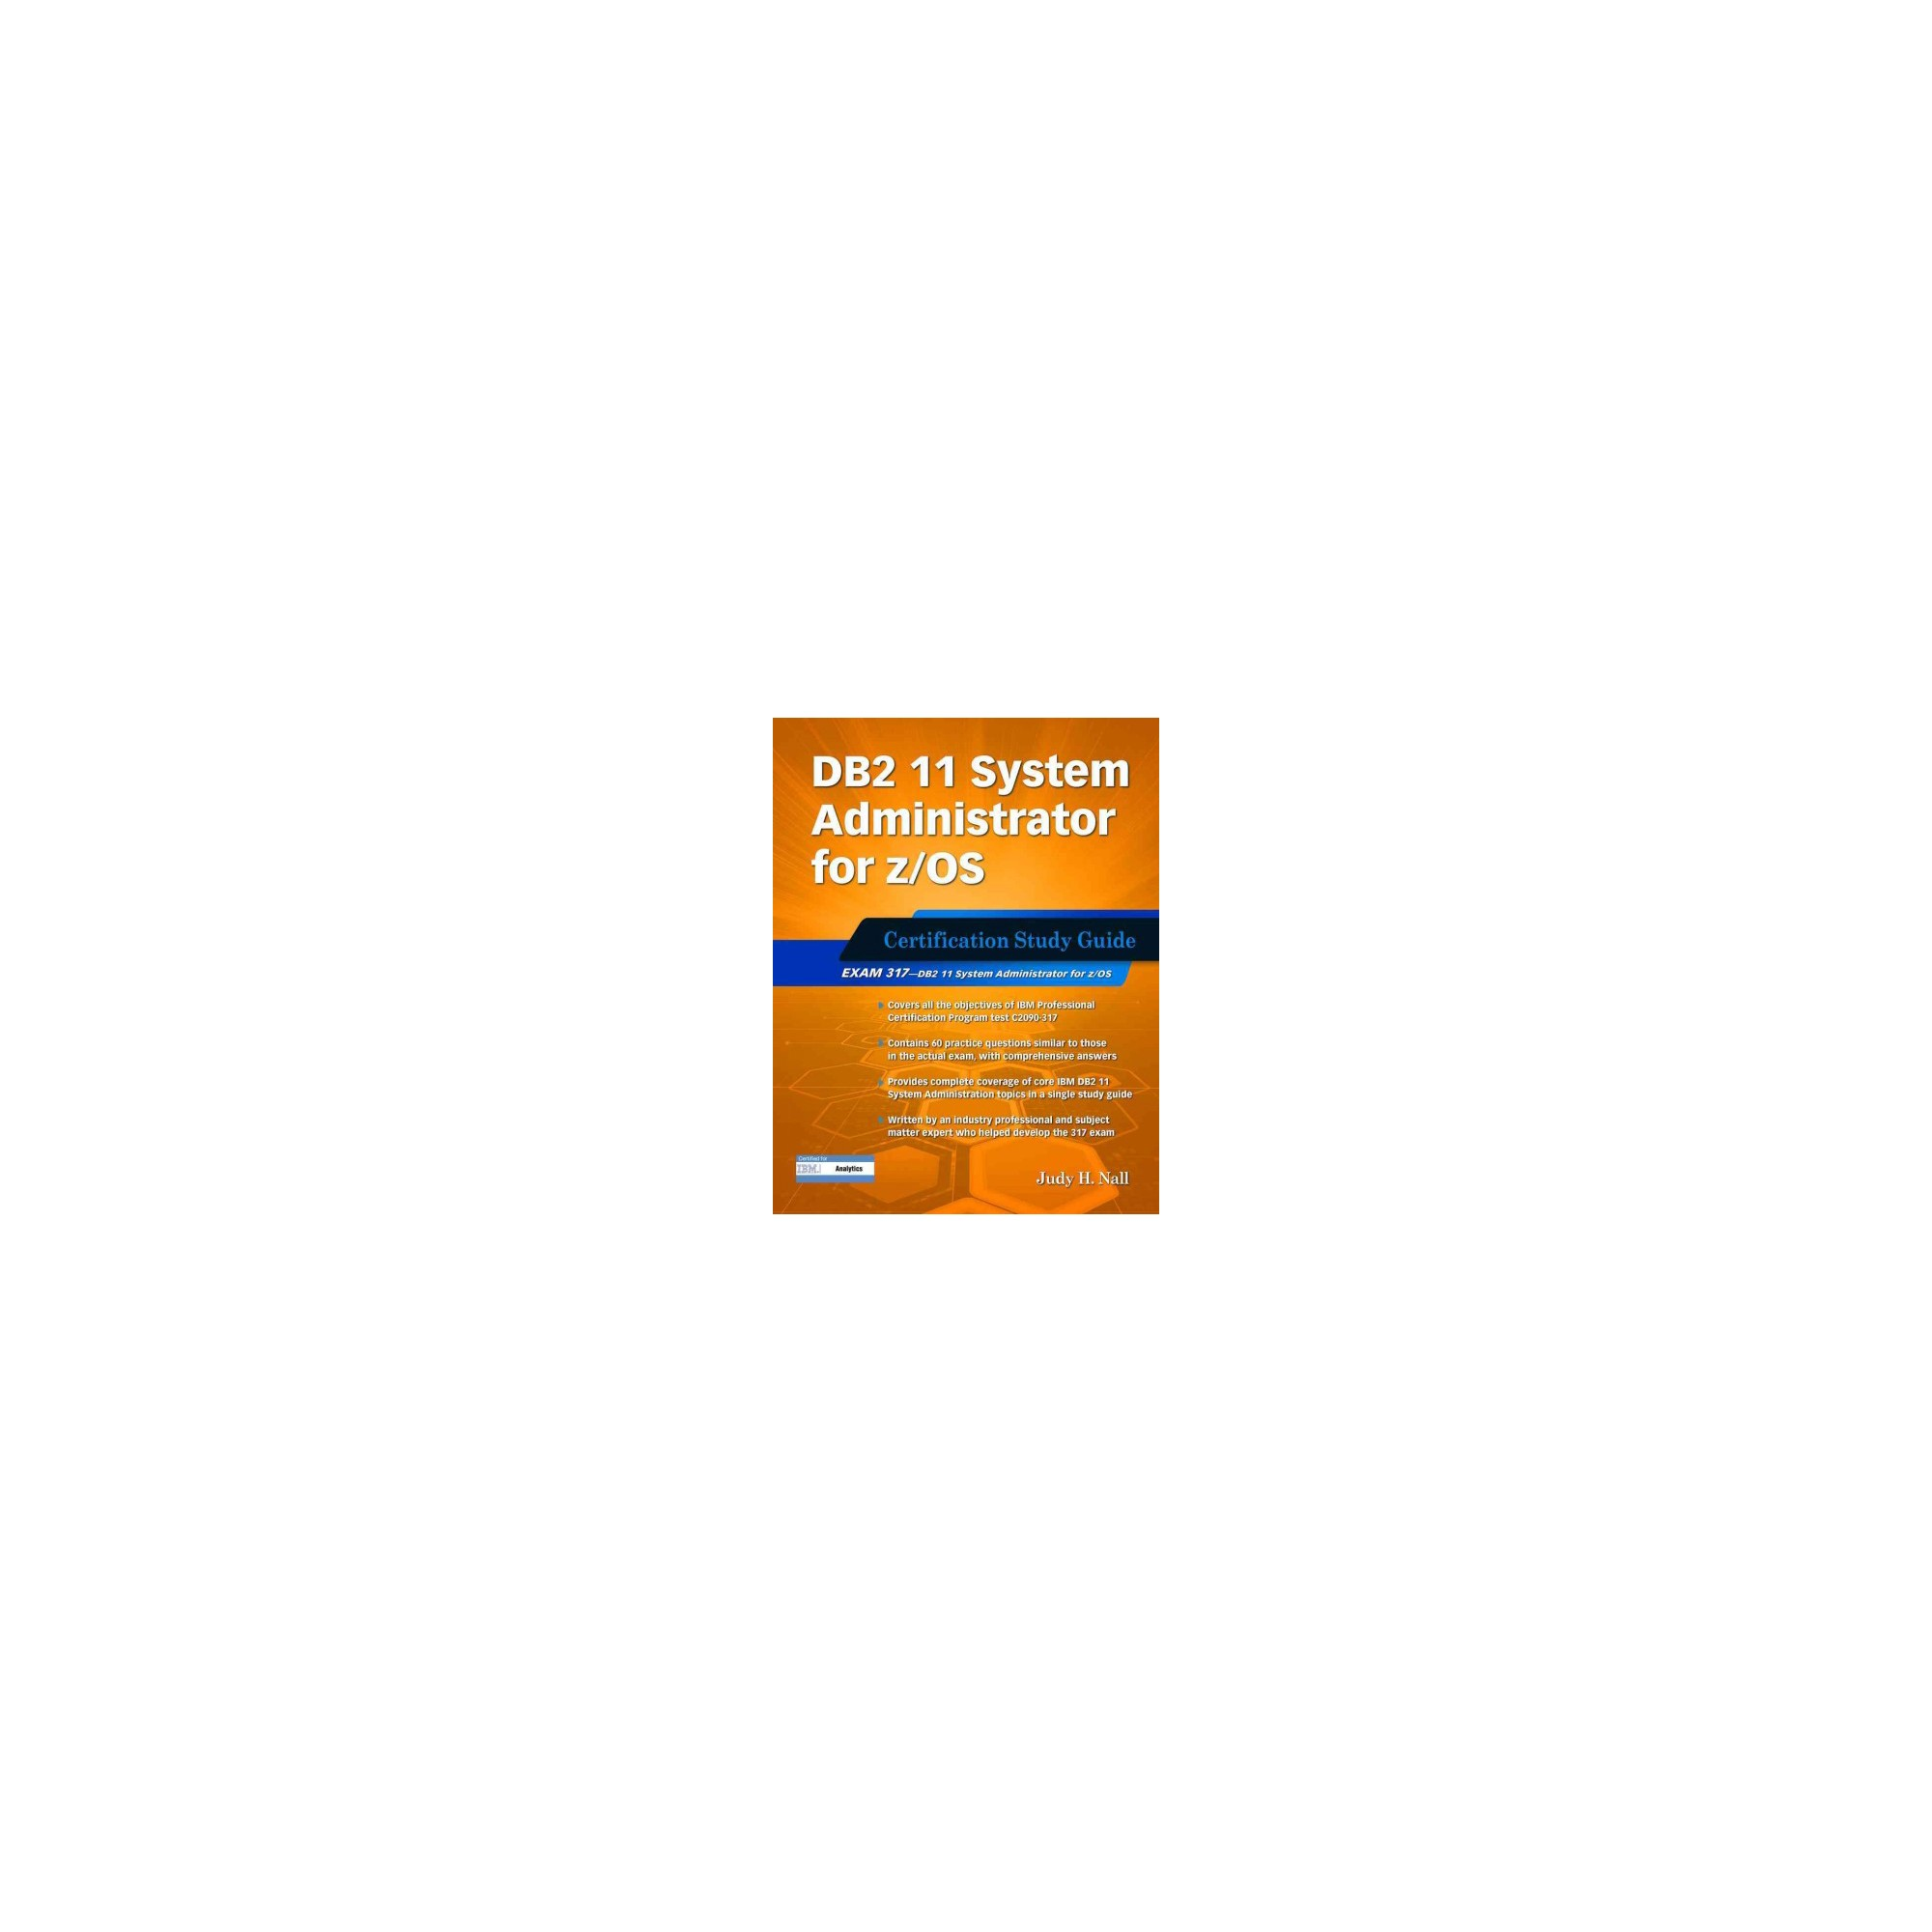 Exam 317 Certification Study Guide DB2 11 System Administrator for z//OS